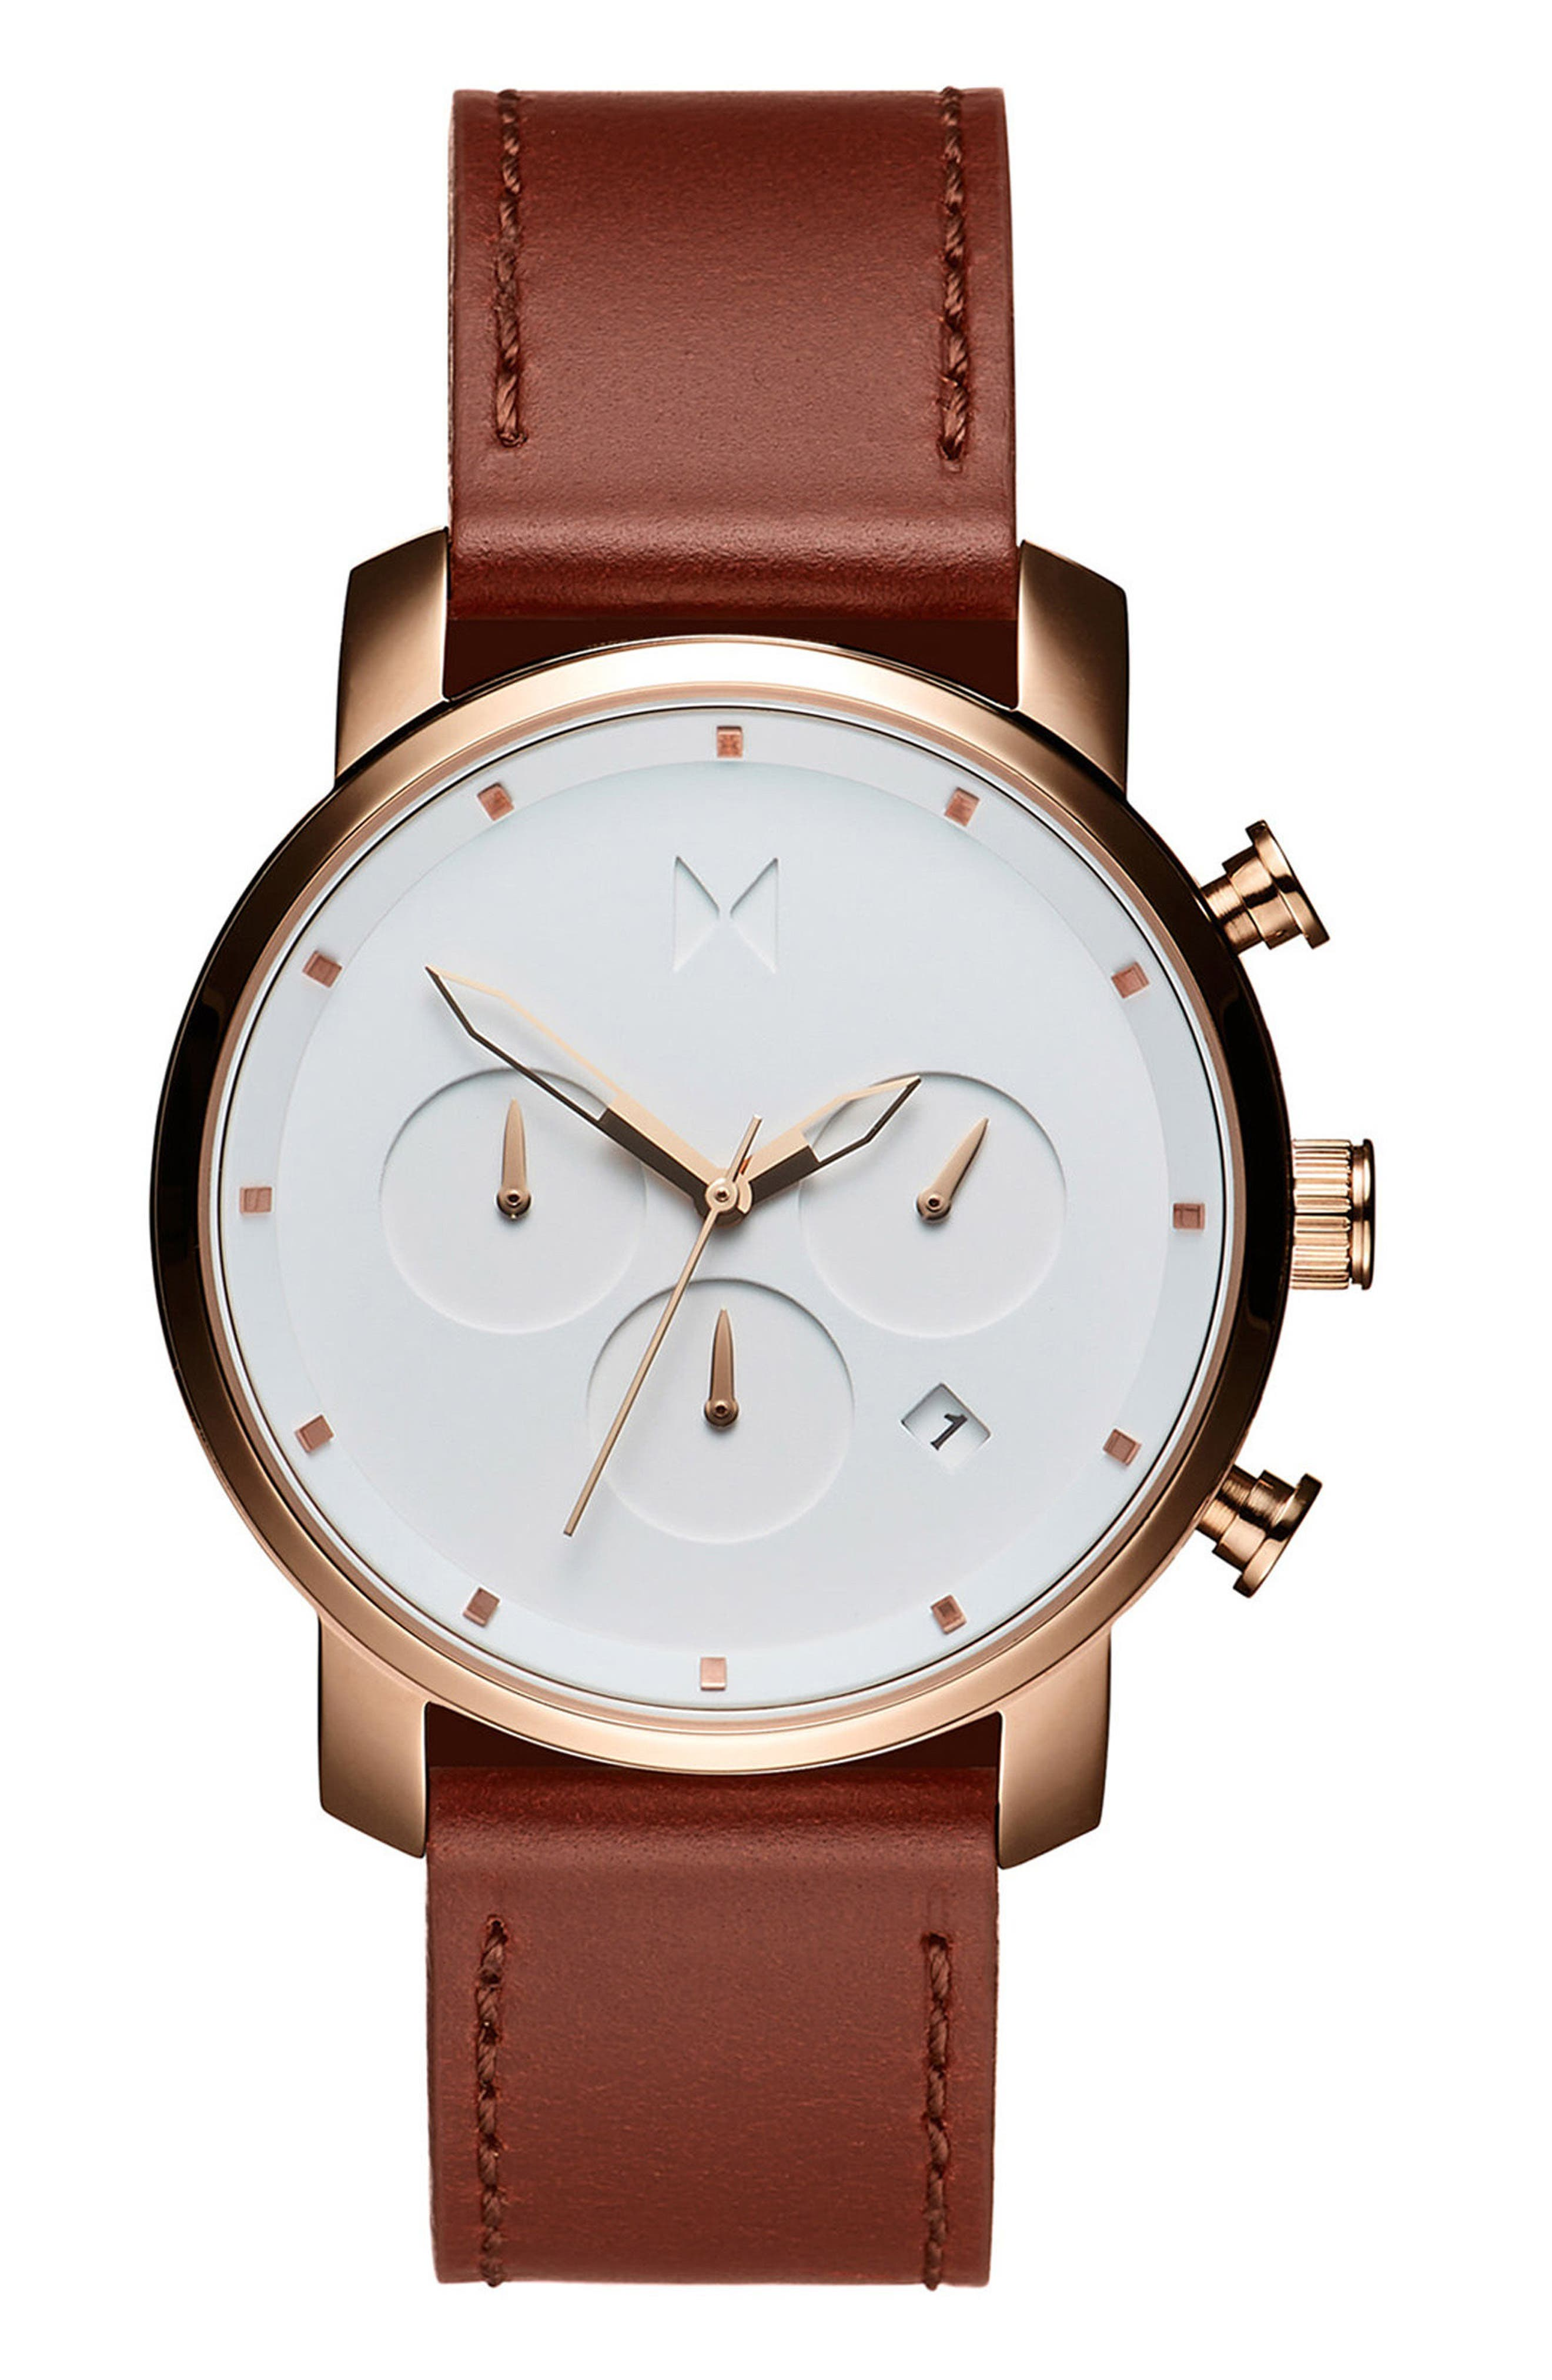 MVMT The Chrono Chronograph Leather Strap Watch, 40Mm in White/ Natural